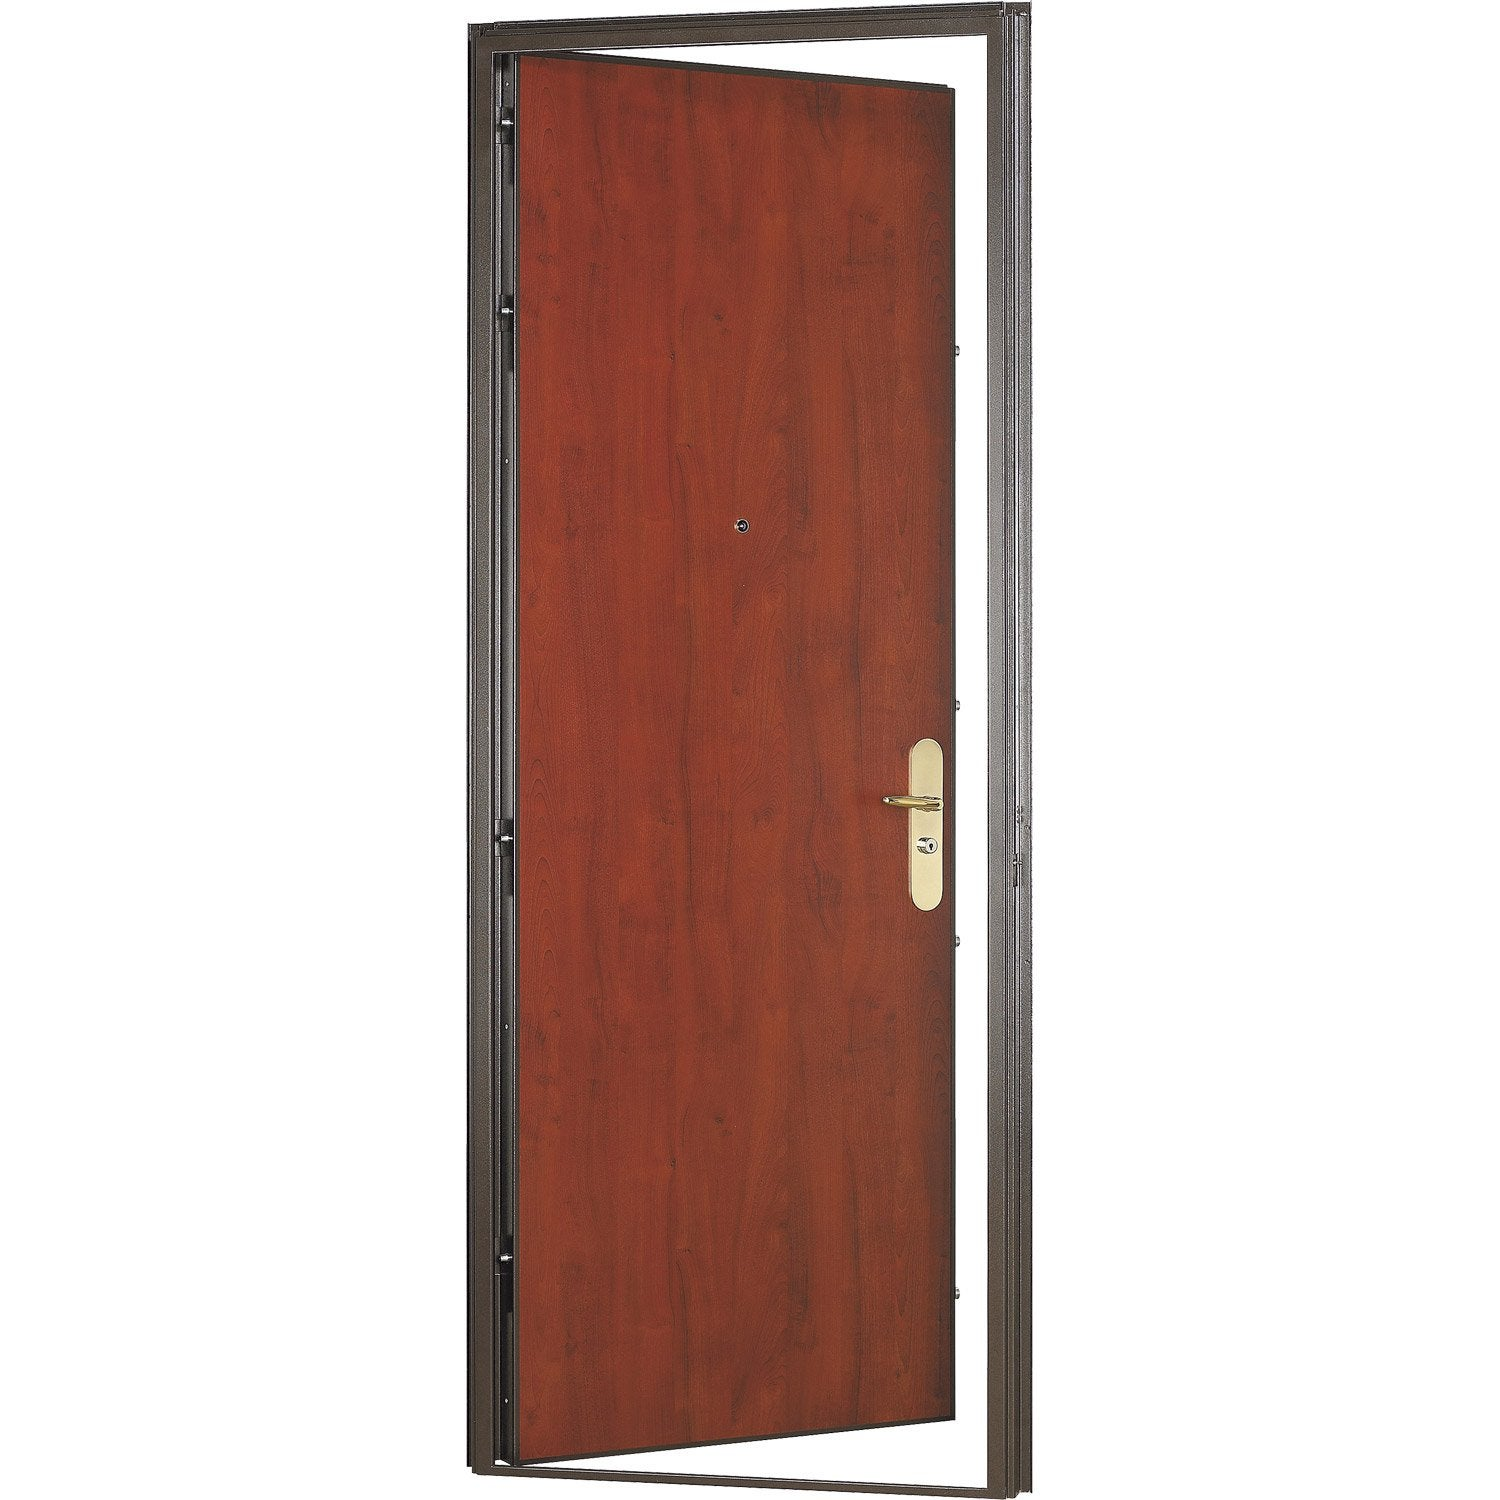 Porte blind e sur mesure diamant 2 leroy merlin for Porte 3 points leroy merlin